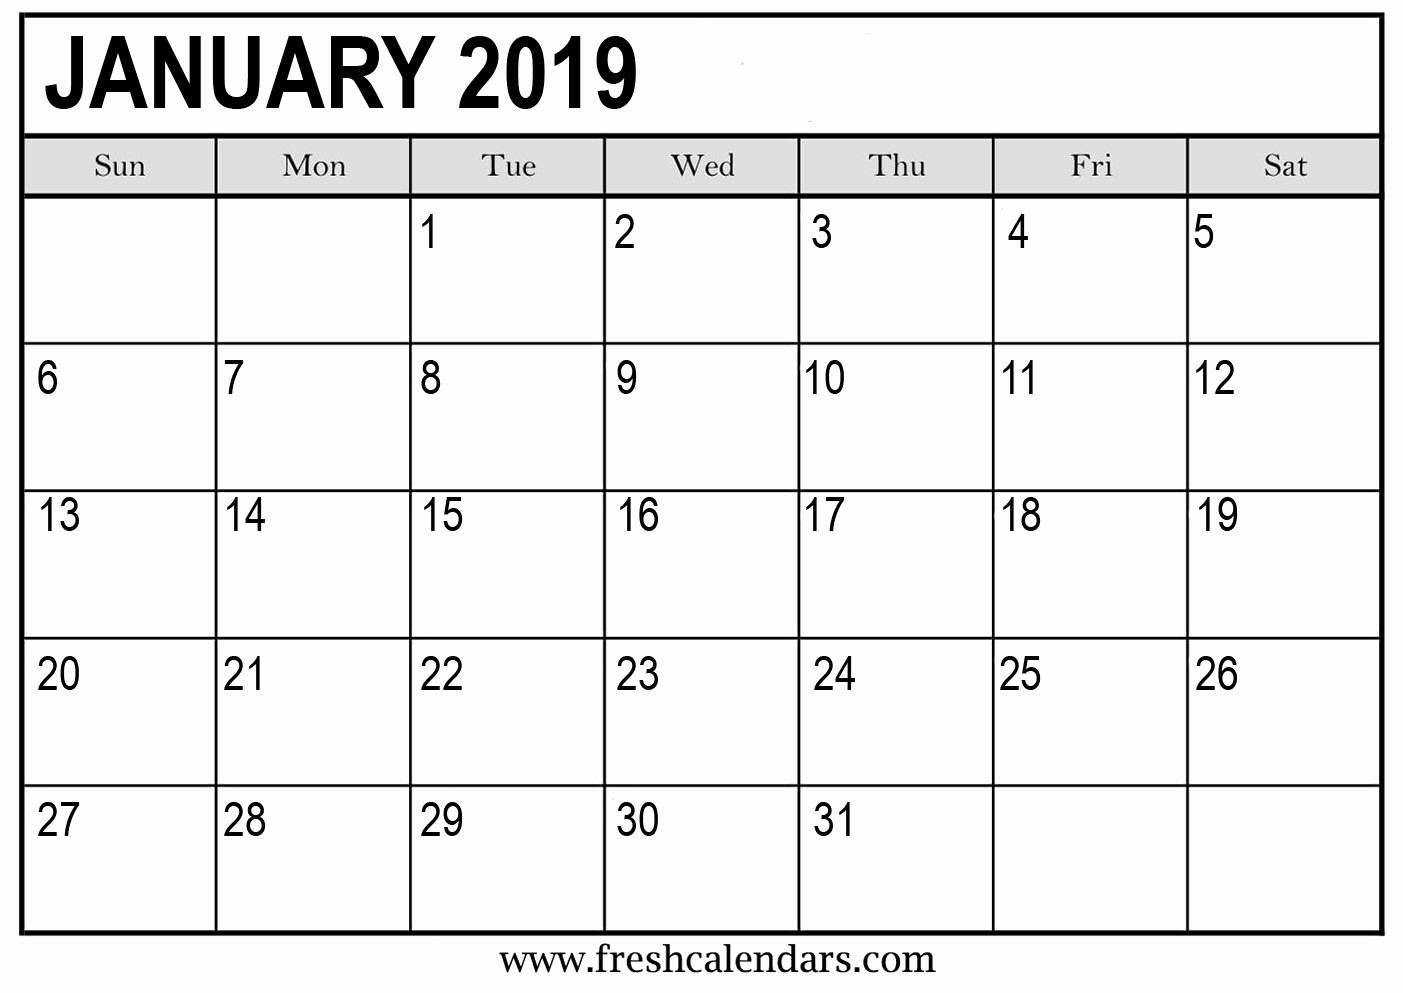 Free Printable Weekly Calendar 2019 Lovely Printable January 2019 Calendar Fresh Calendars